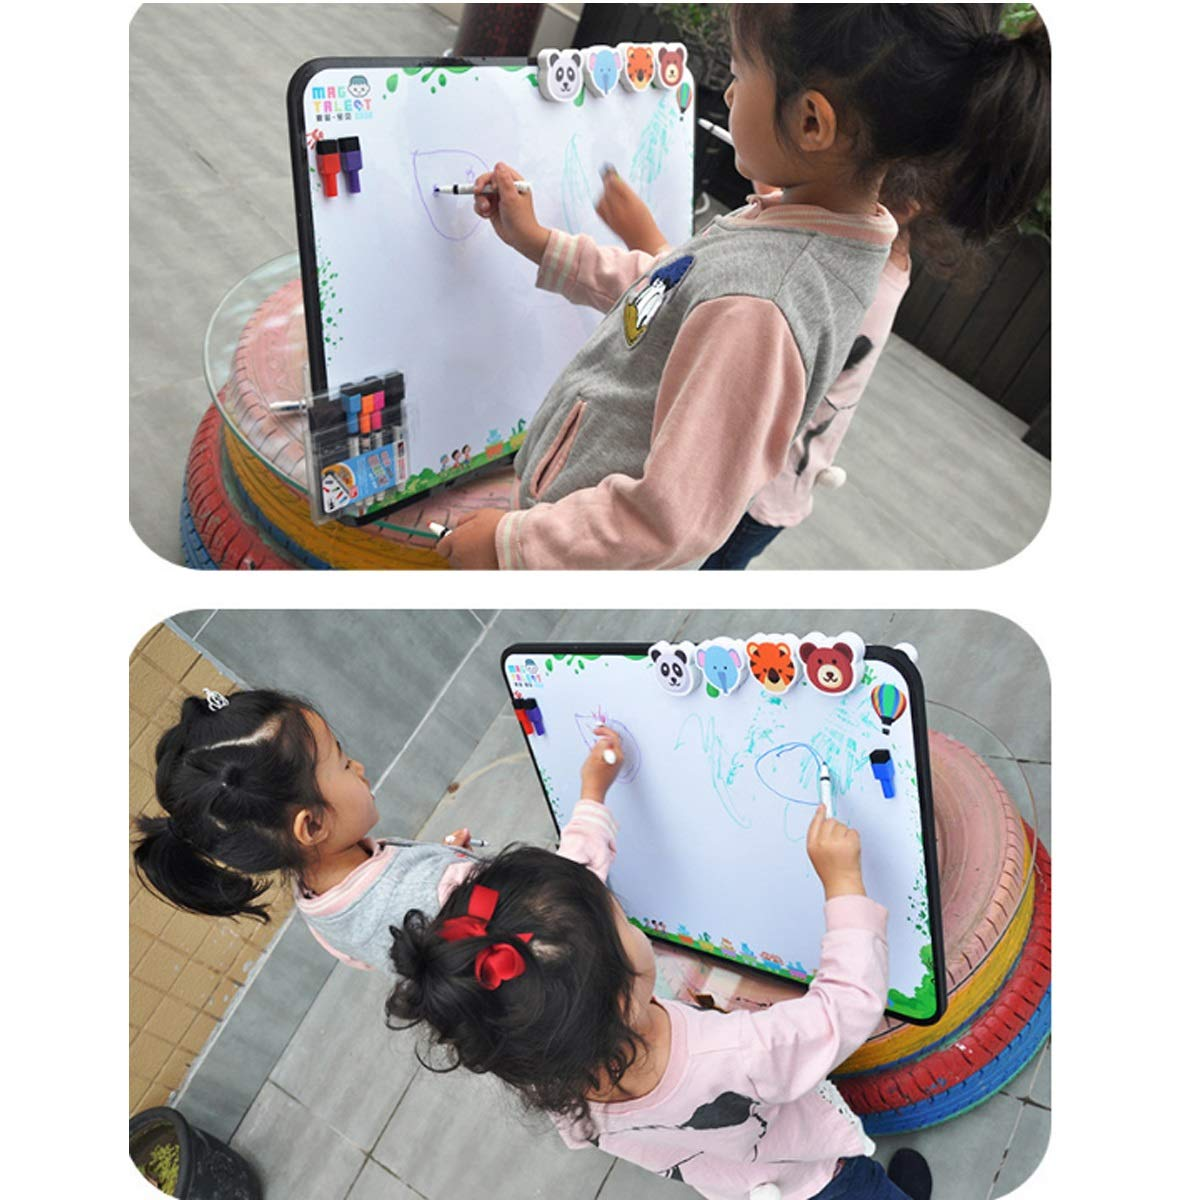 8haowenju Detachable Magnetic Multi-Function Portable Drawing Board, Writing Board, Note Board, Magnetic Photo Frame, Multi-Function Sketchpad (Size : F) by 8haowenju (Image #4)